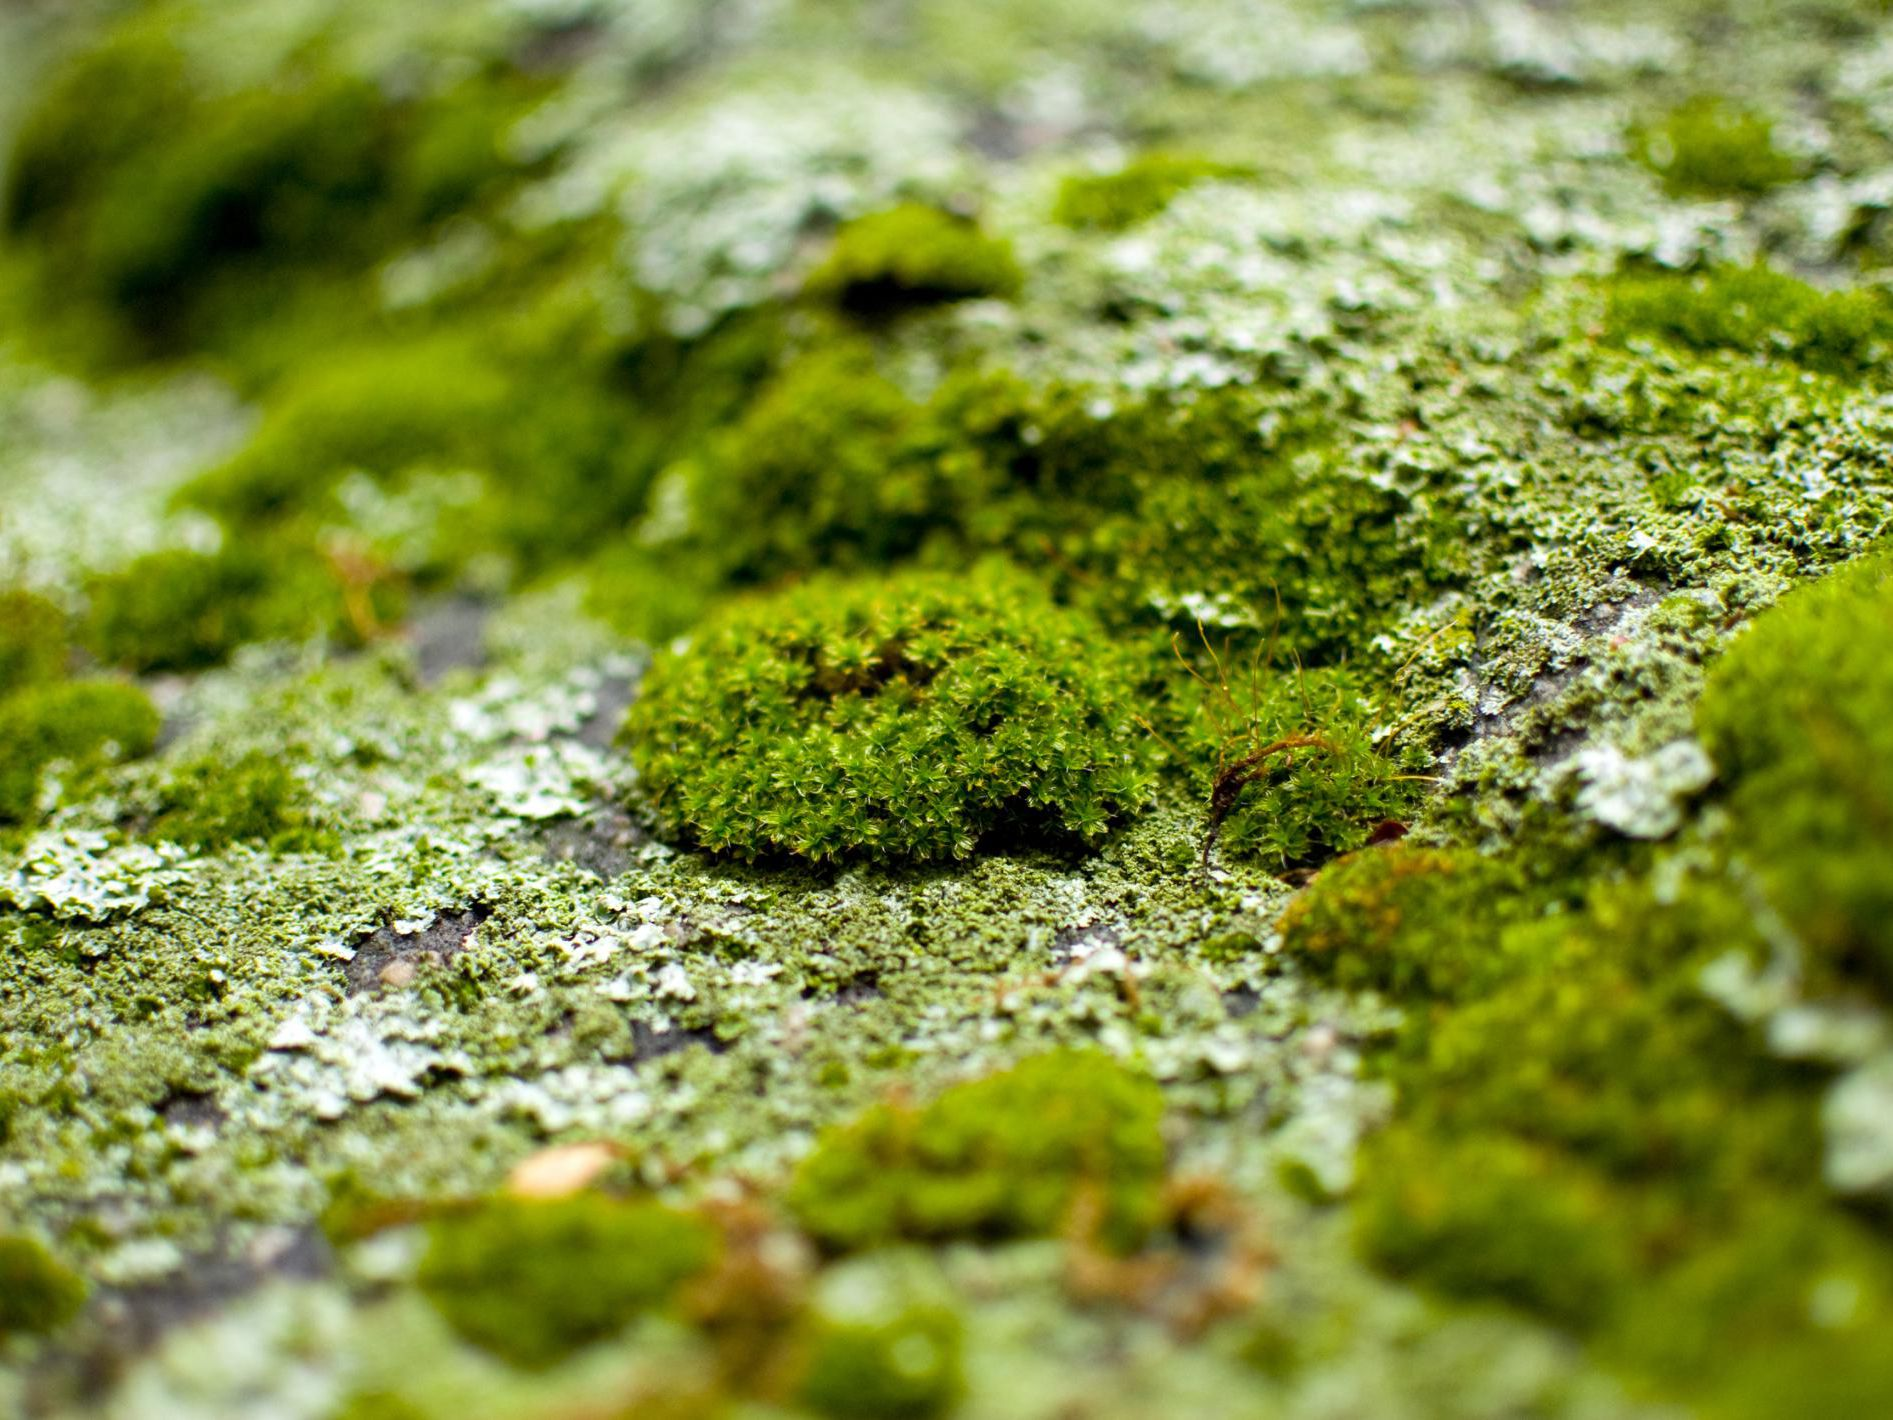 How to Prevent the Growth of Moss